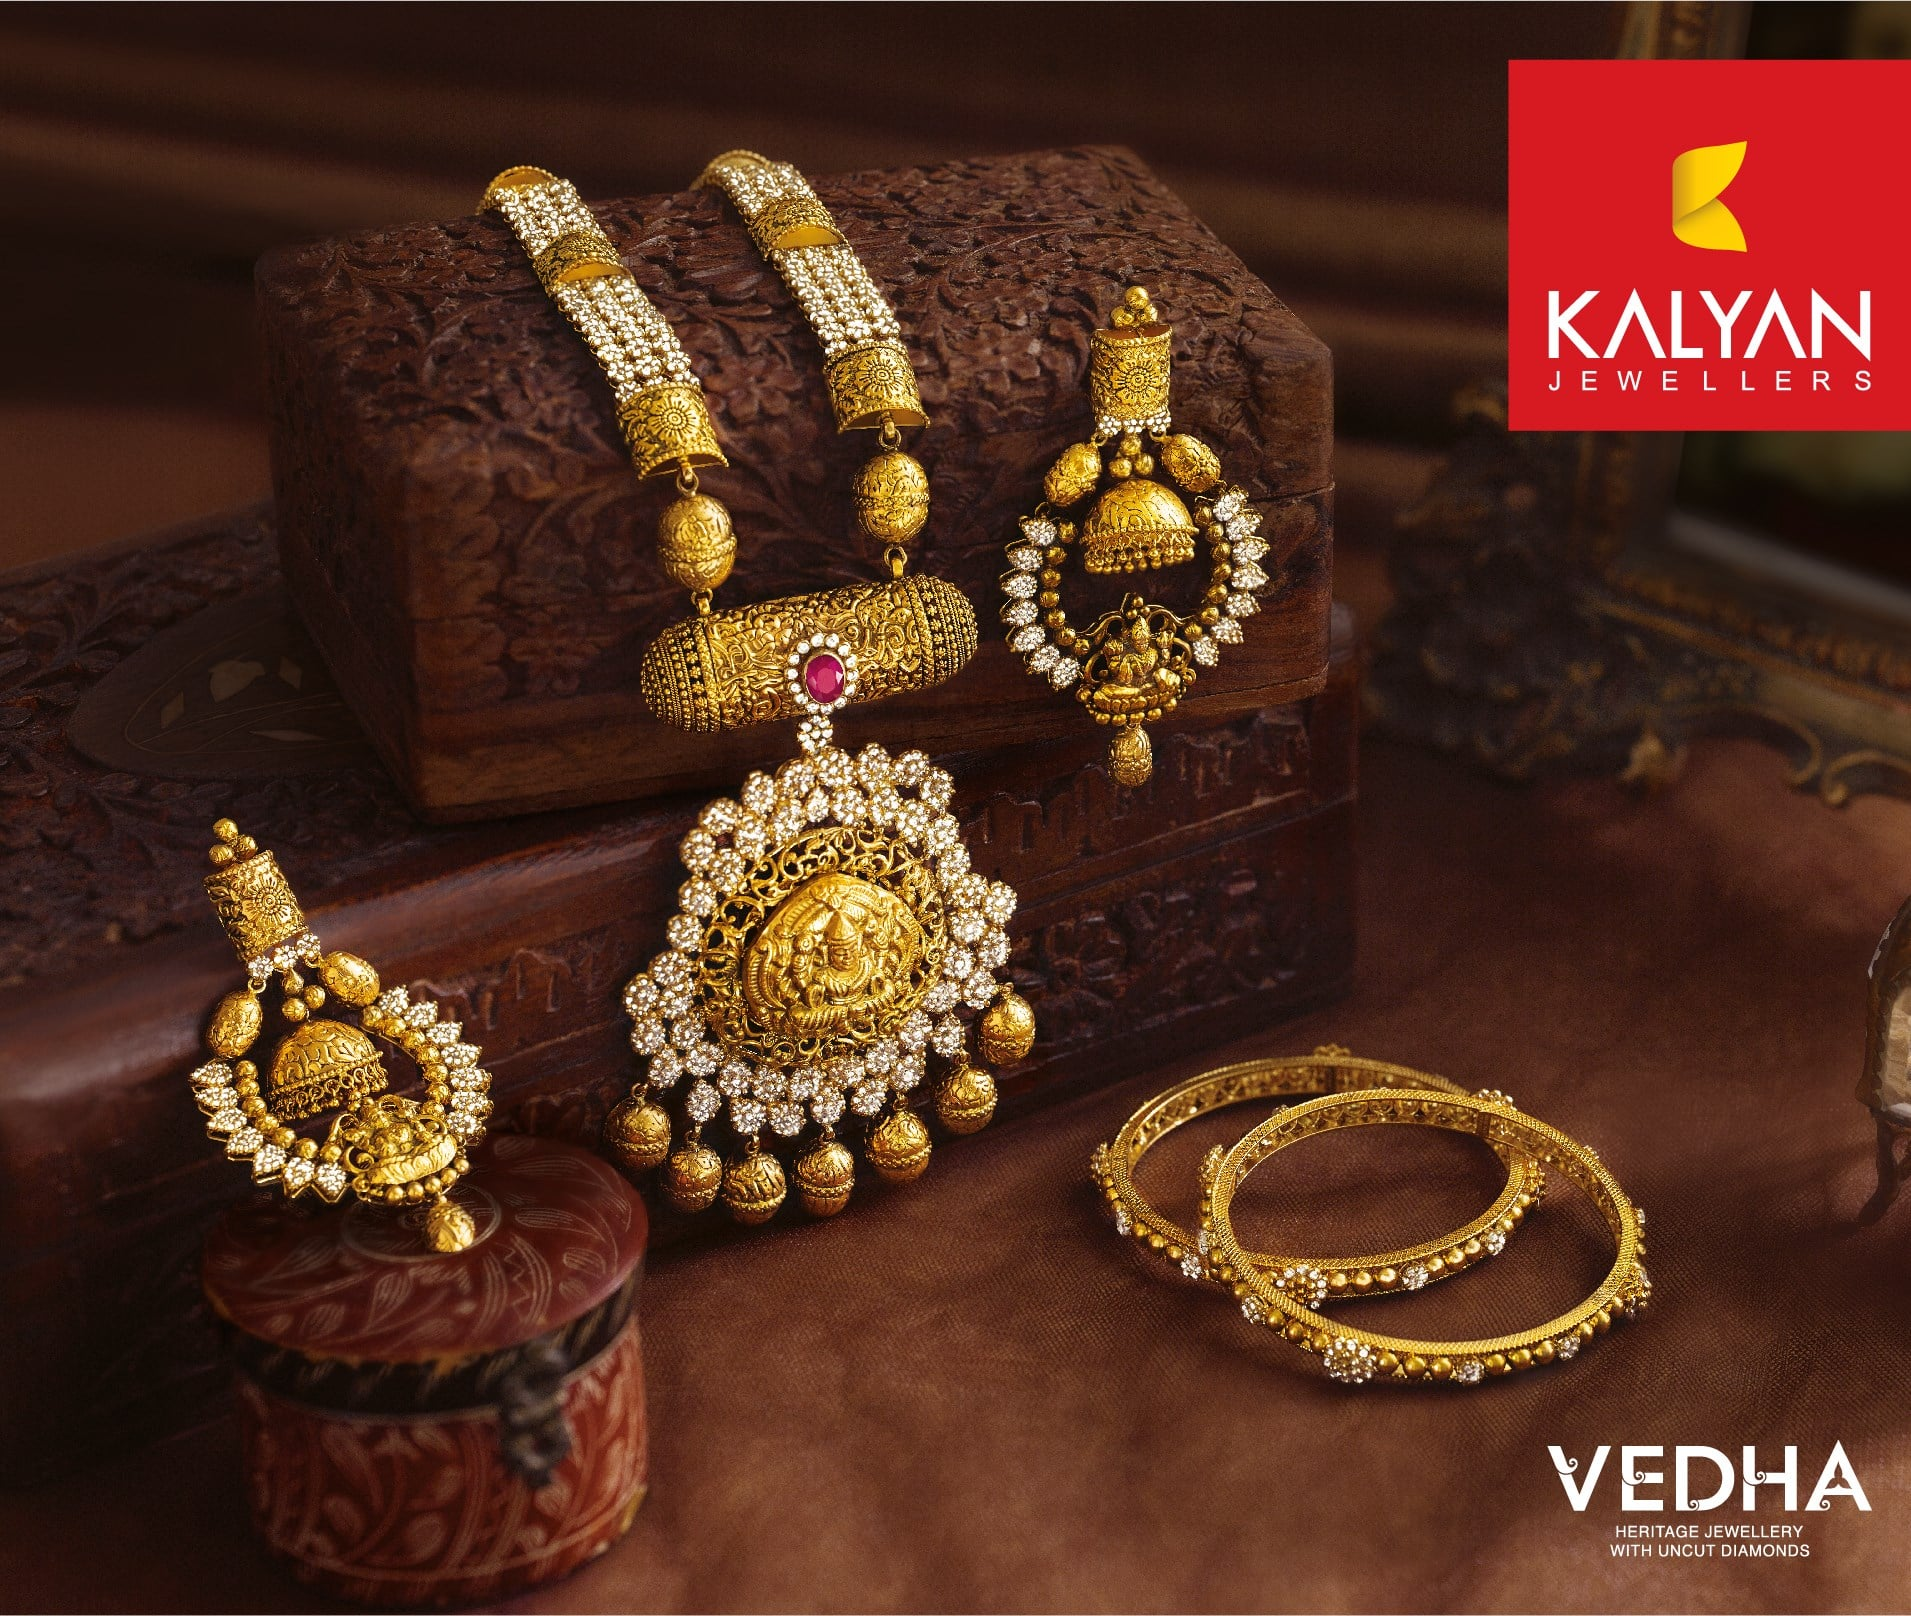 5 Arrested For Cybercrime Against Kalyan Jewellers